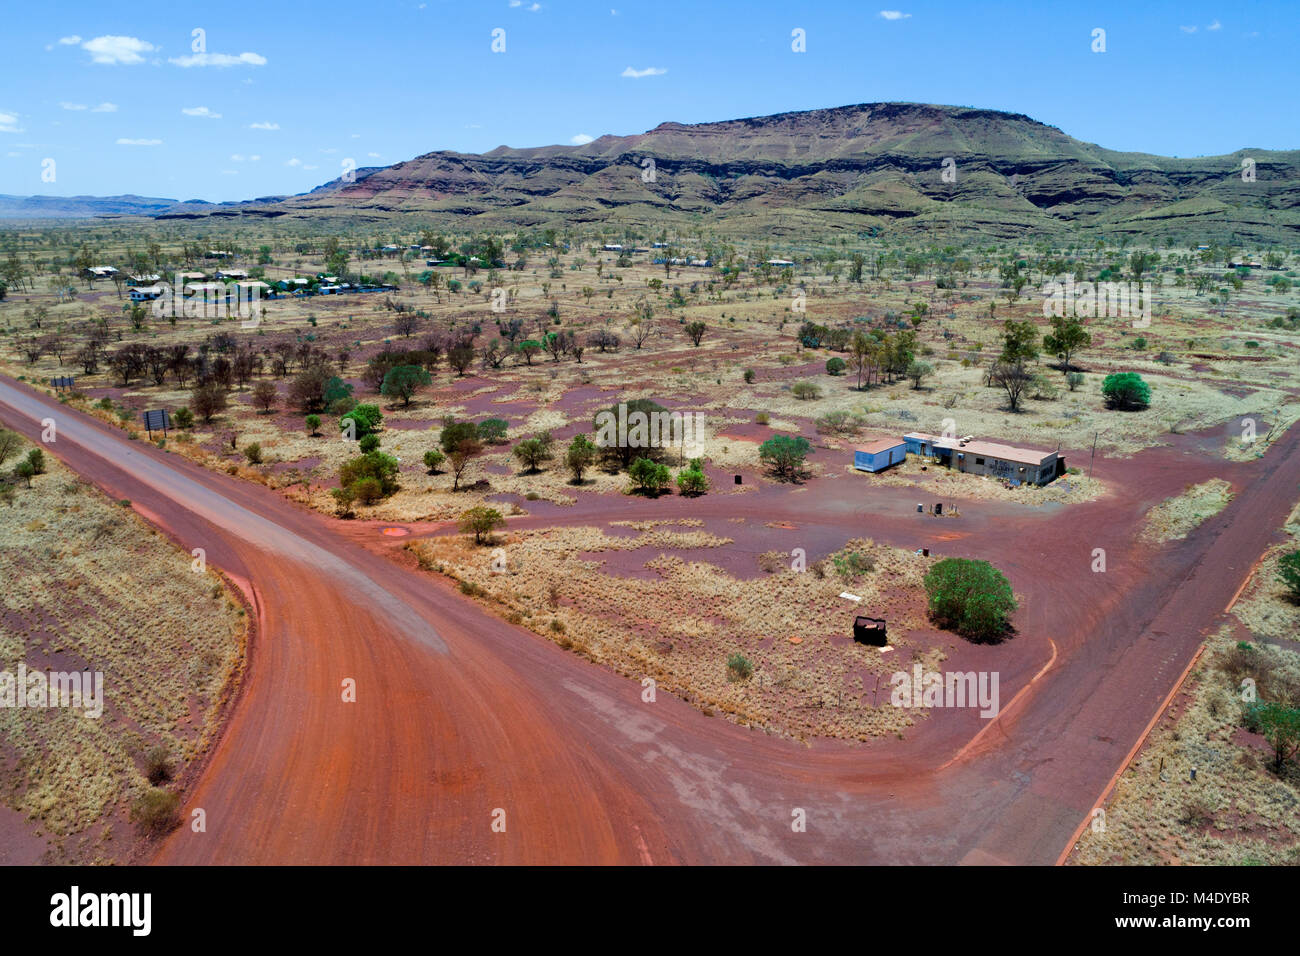 Arial view over the abandoned asbestos mining town of Wittenoom, Pilbara, Western Australia - Stock Image